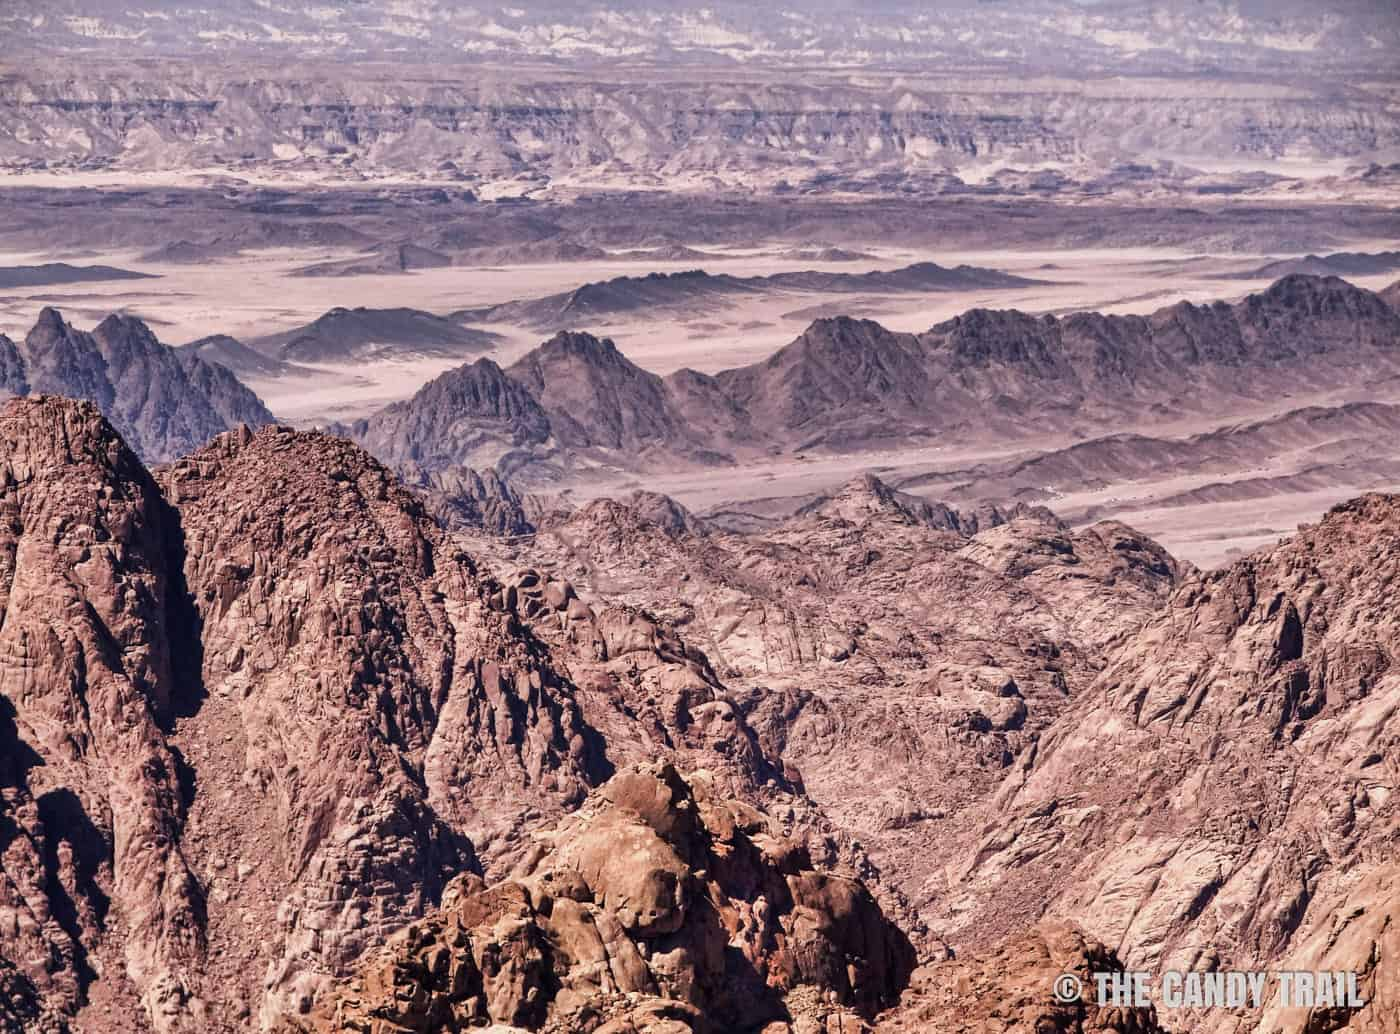 desert-mountain ranges from top of mount sinai in egypt